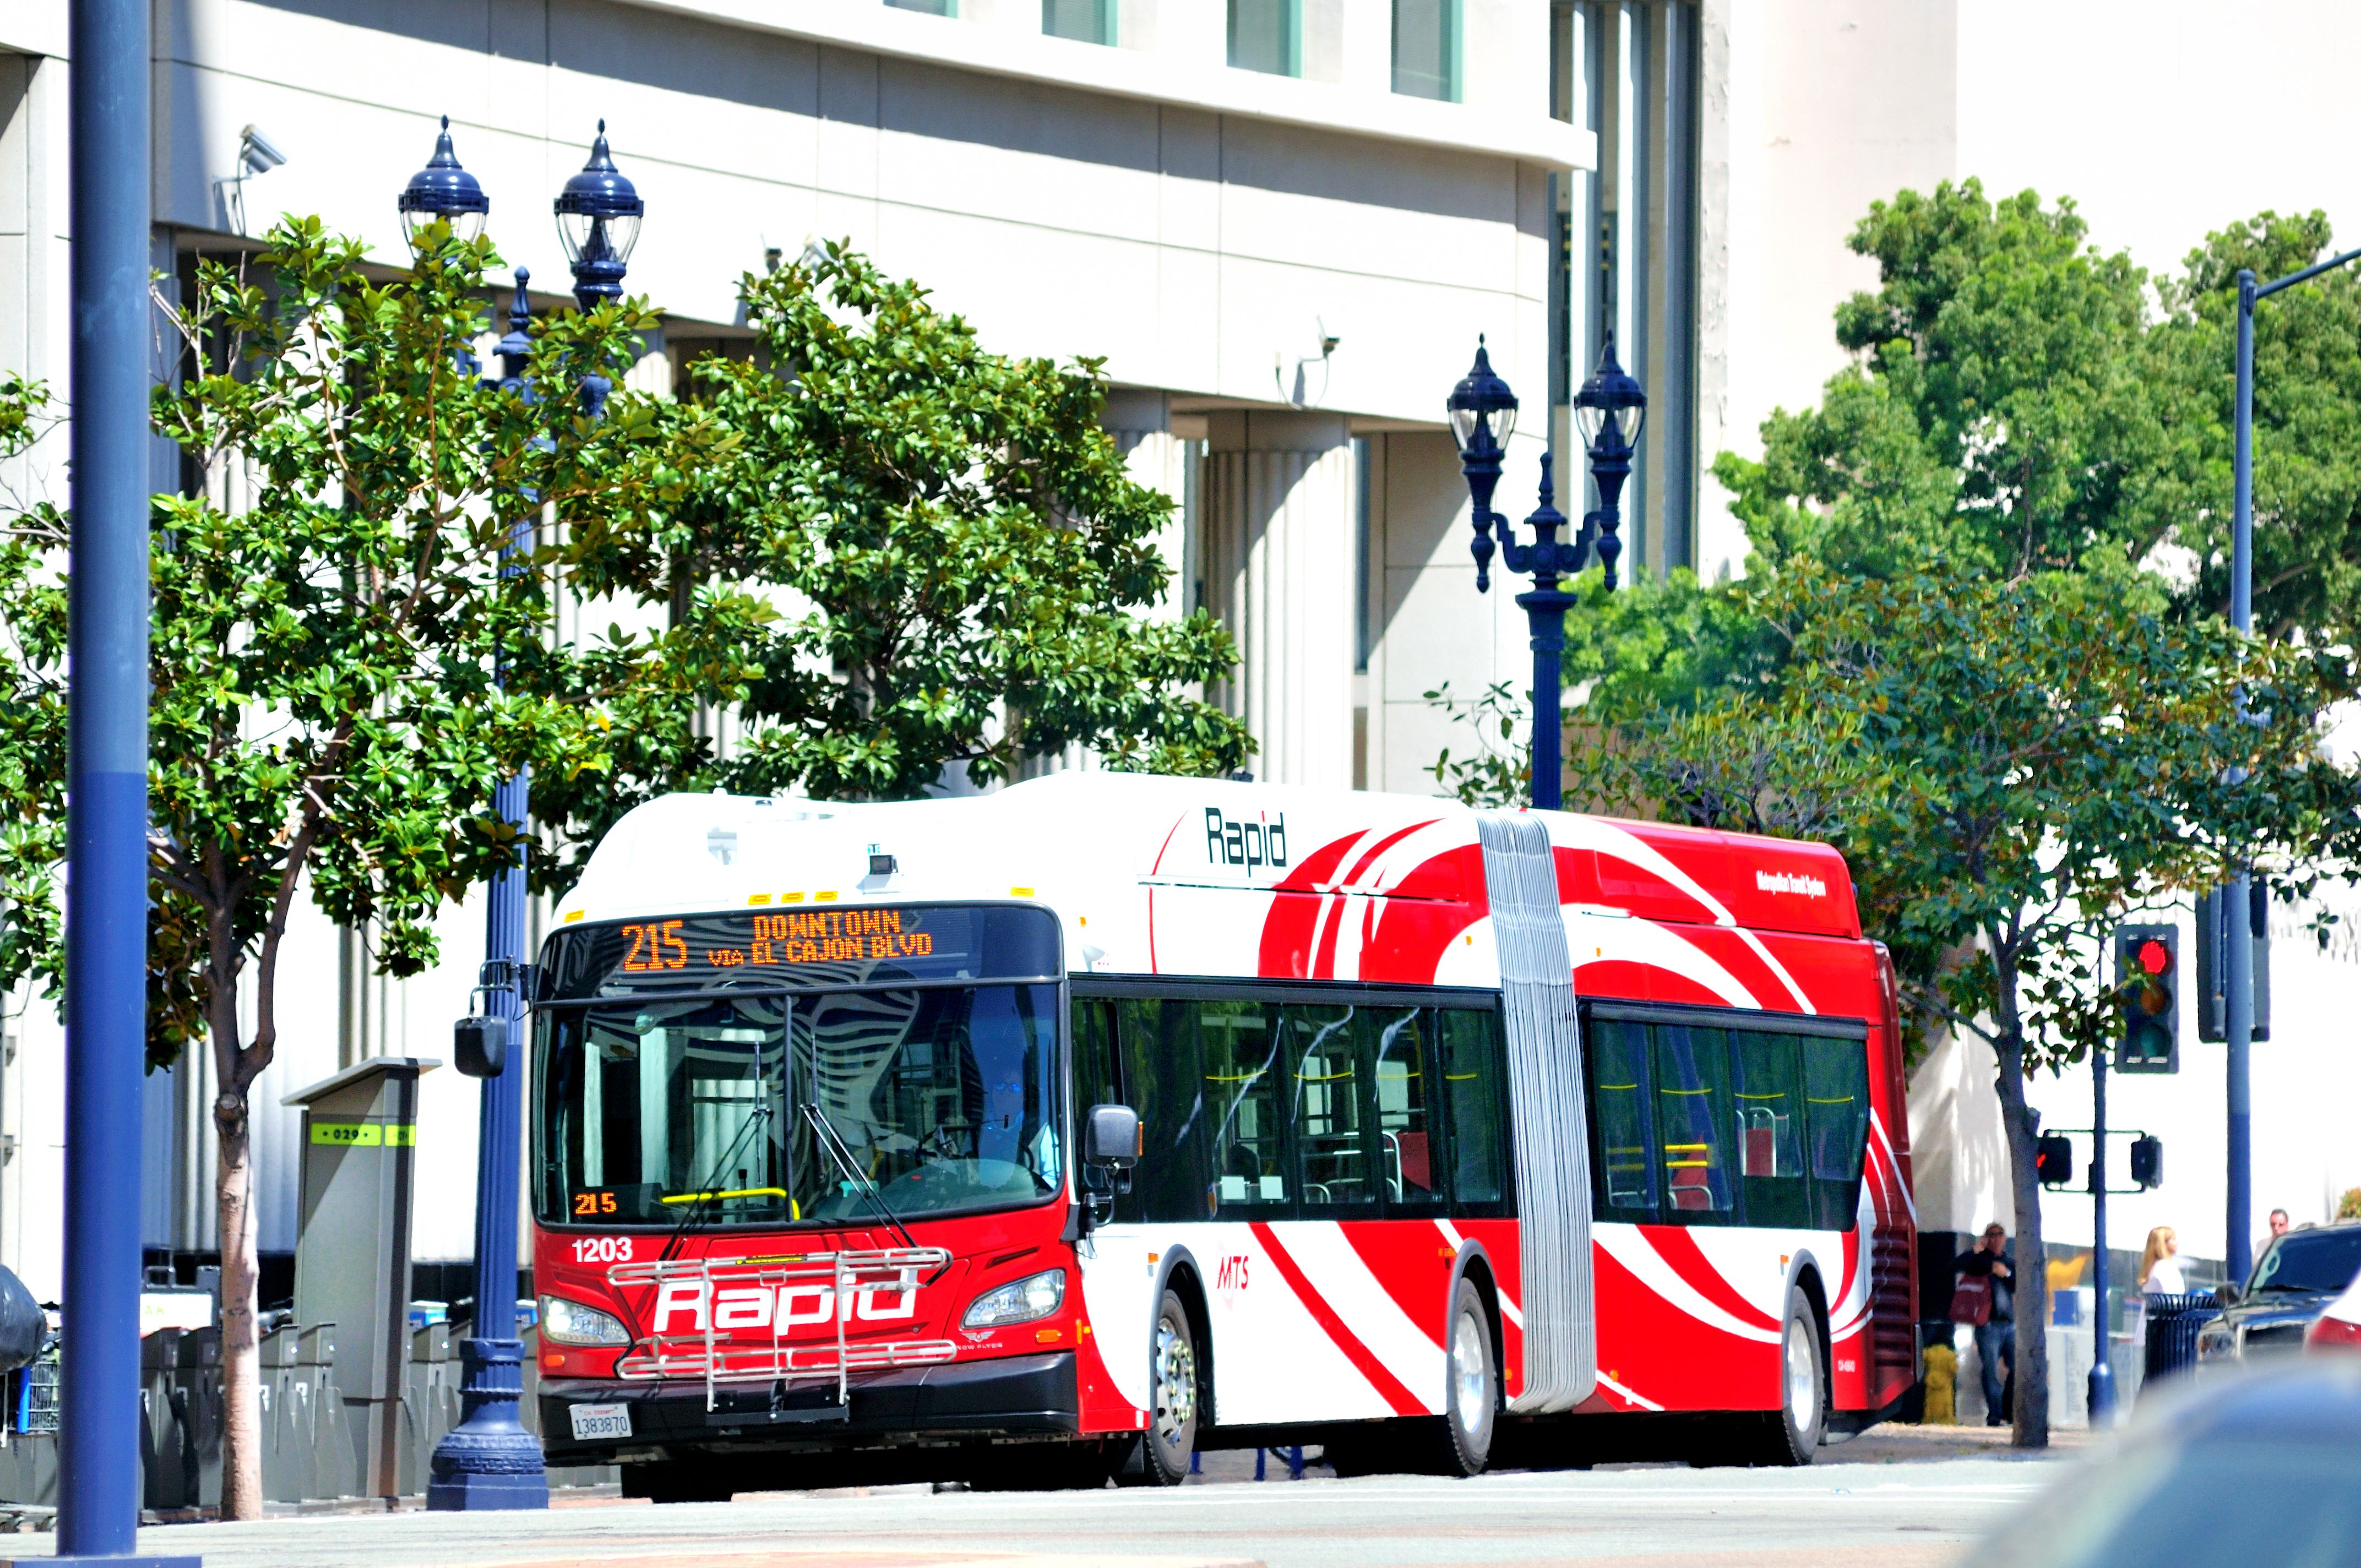 Redrawing the Lines of Transit Bus Services